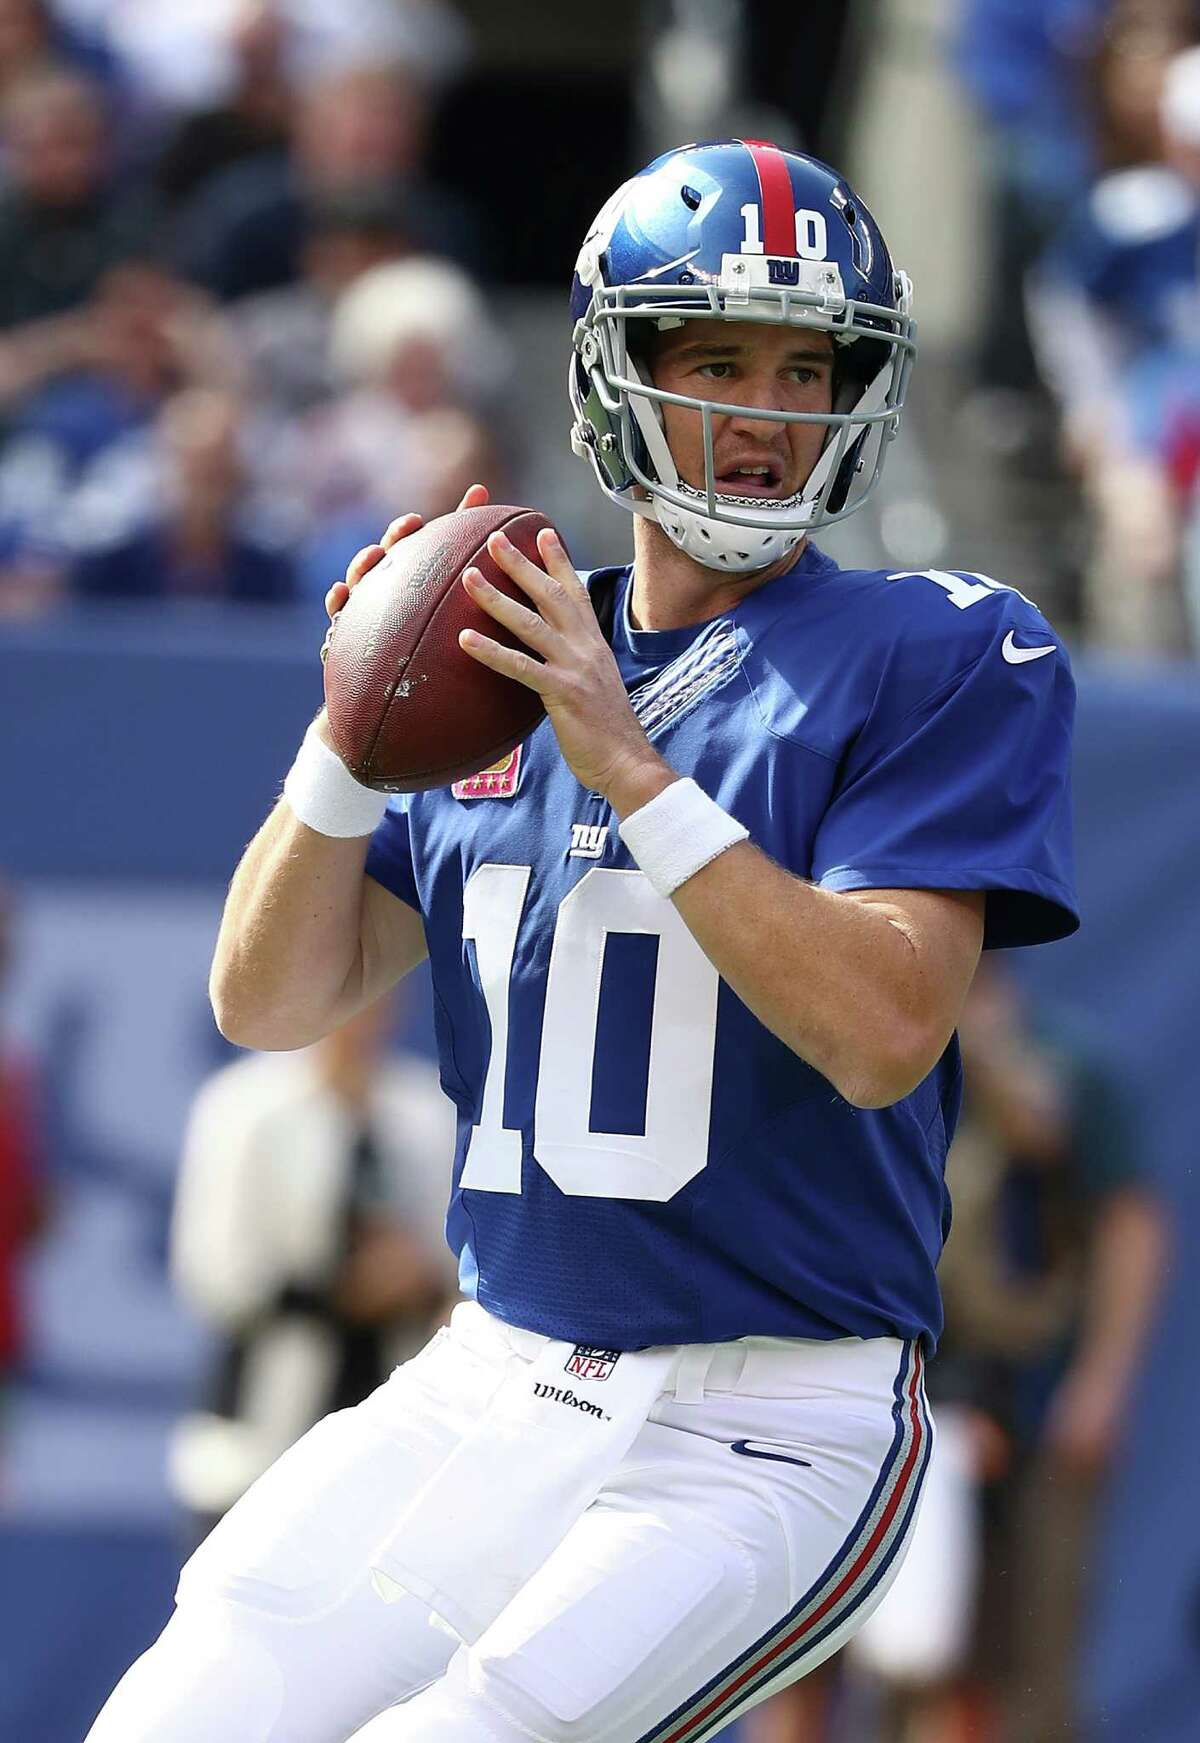 Philadelphia (4-3) plus-2½ at NY Giants (4-3) Giants 24-20